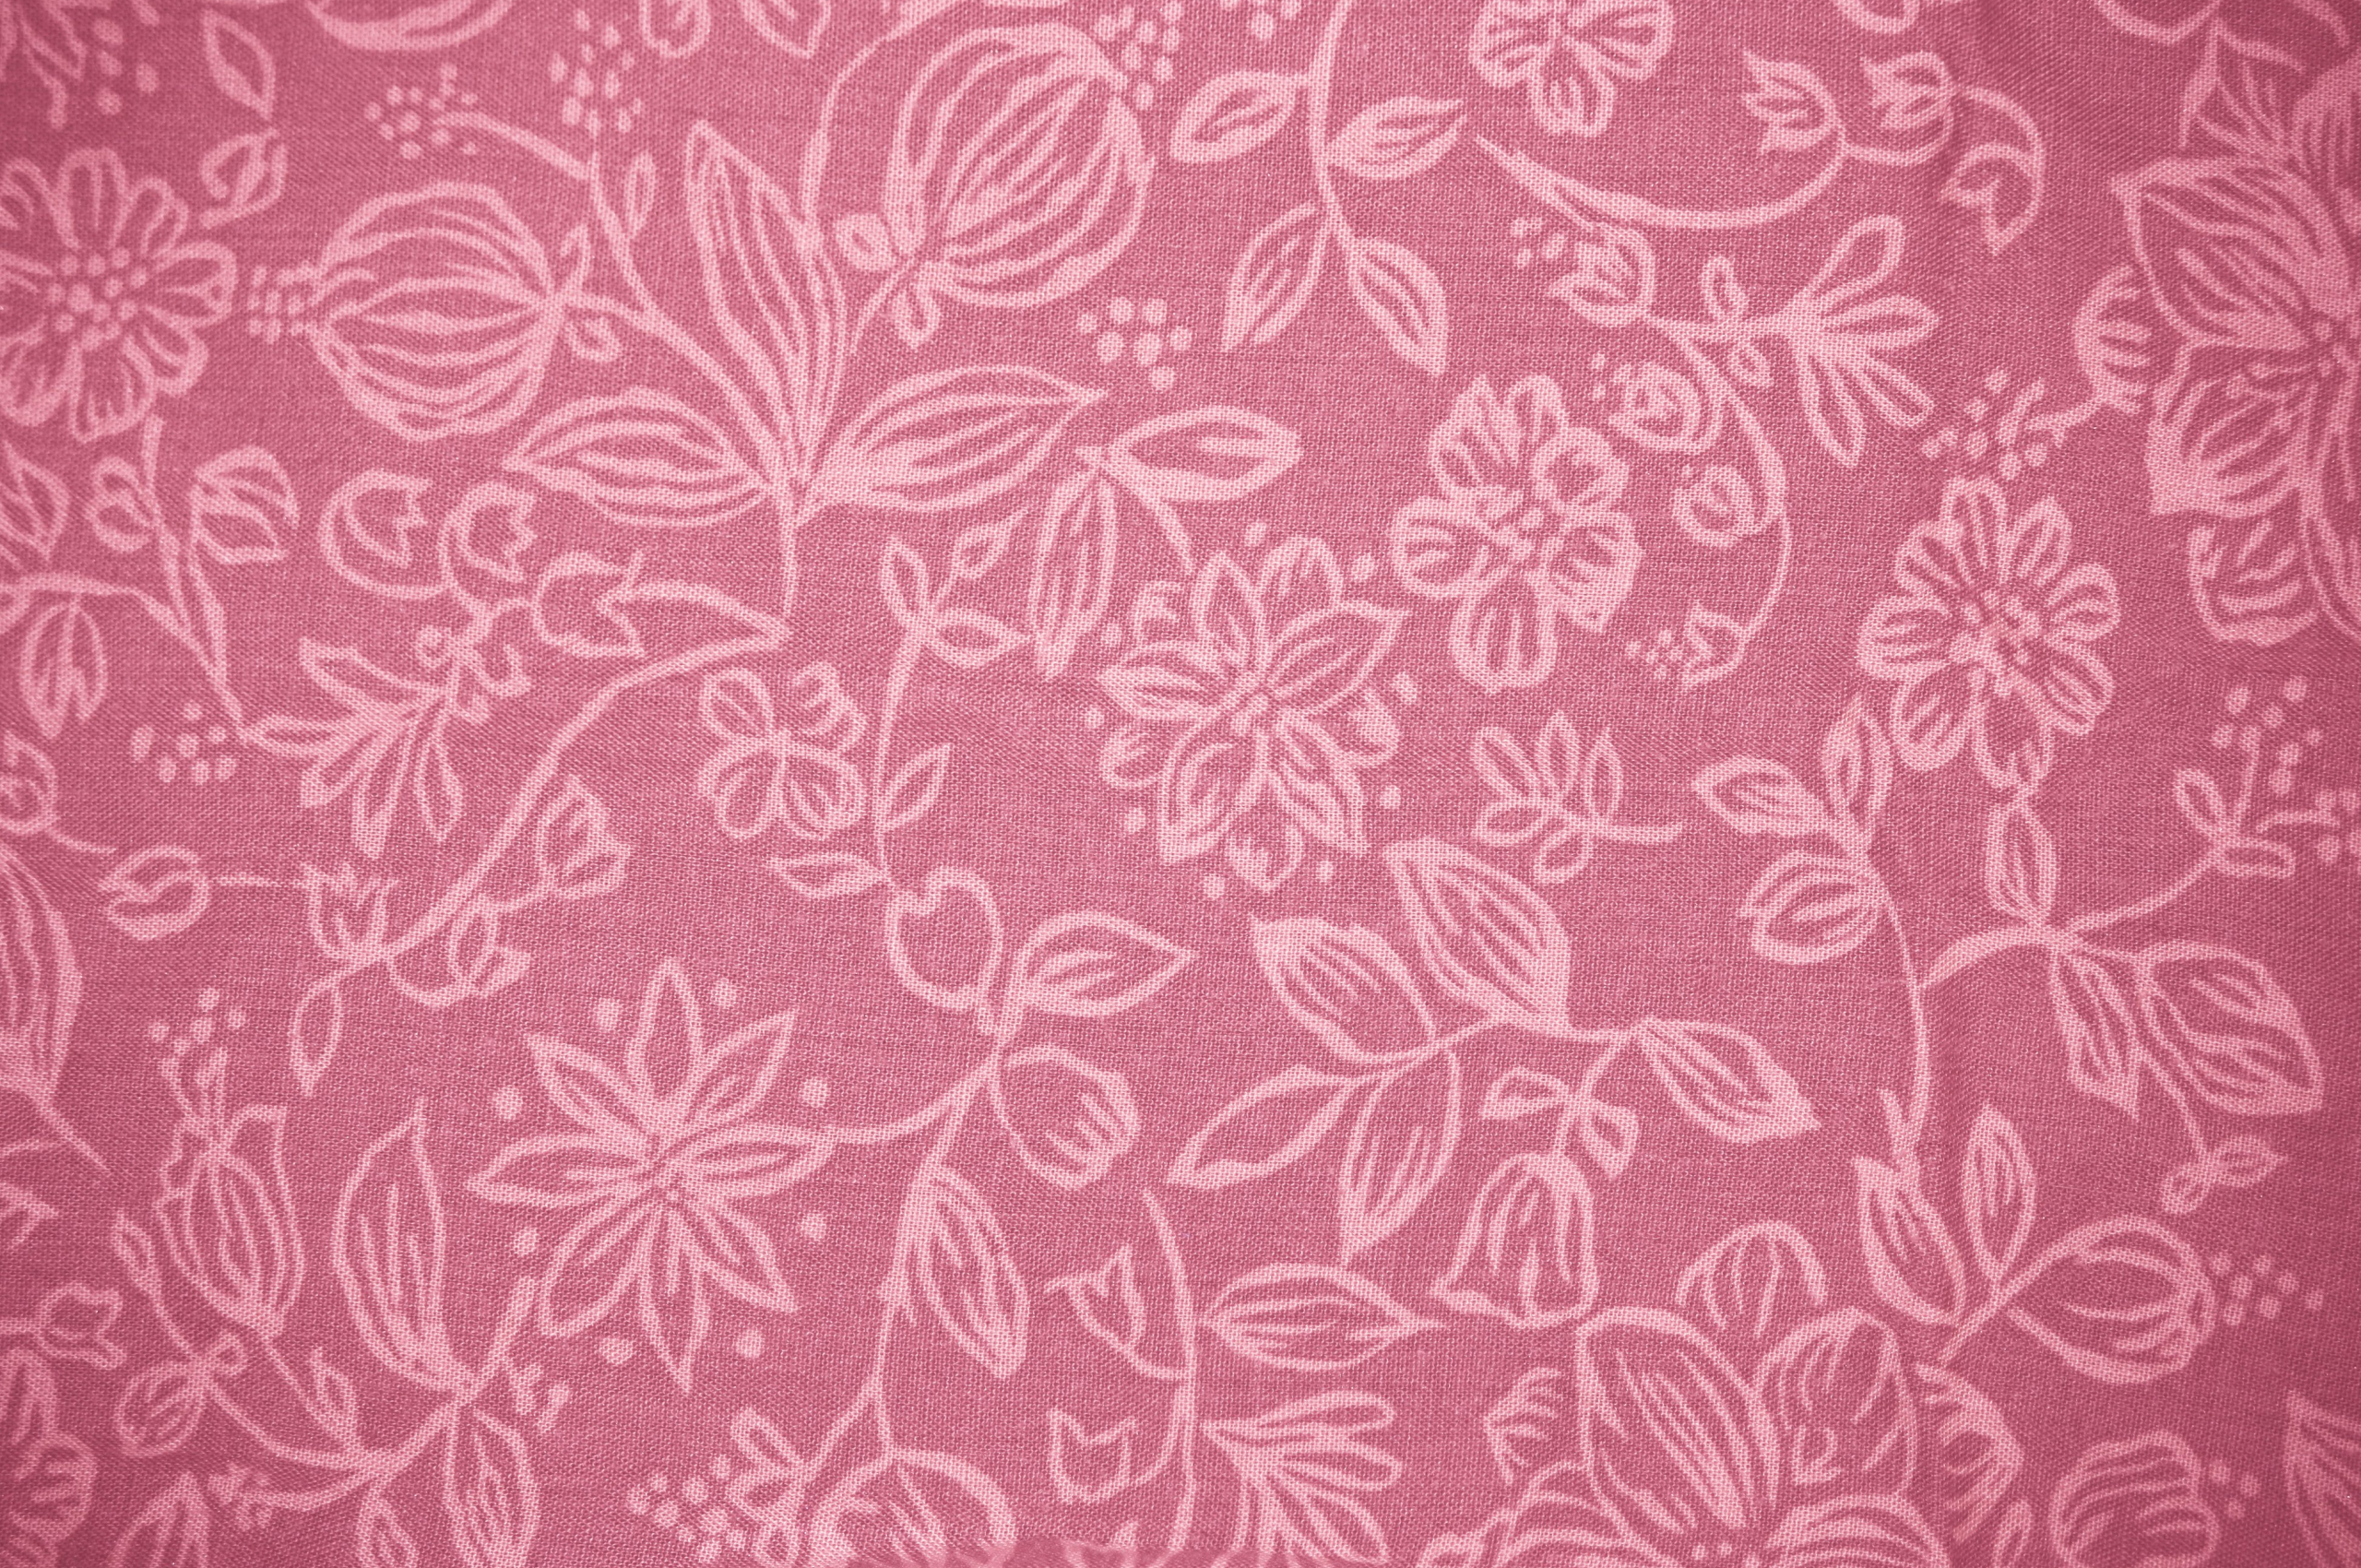 Free Download Coral Colored Fabric With Floral Pattern Texture